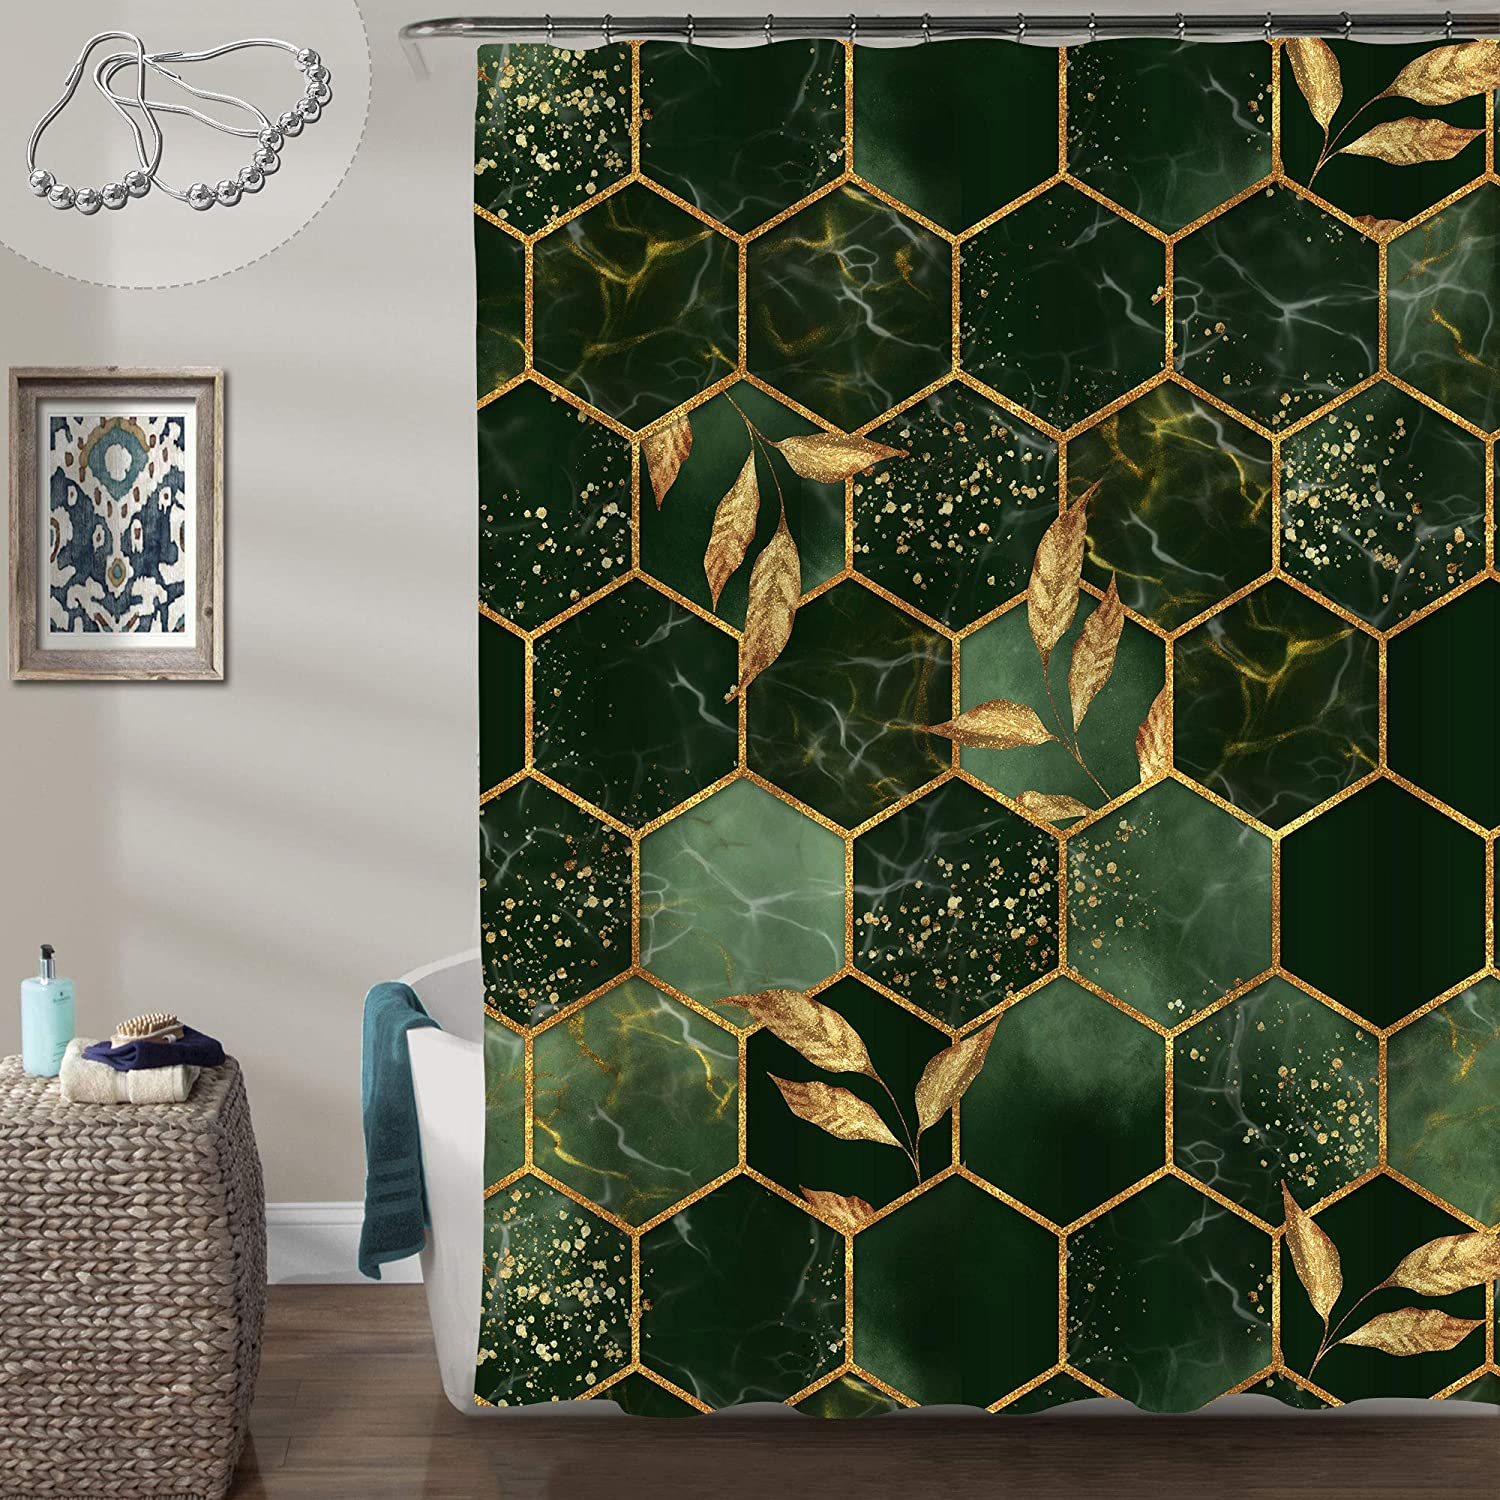 Gibelle Marble Shower Curtain, Abstract Dark Green Marble Geometric Texture with Golden Leaves Artistic Bathroom Decor, Contemporary and Luxury Bathroom Accessories for Men and Women, 72